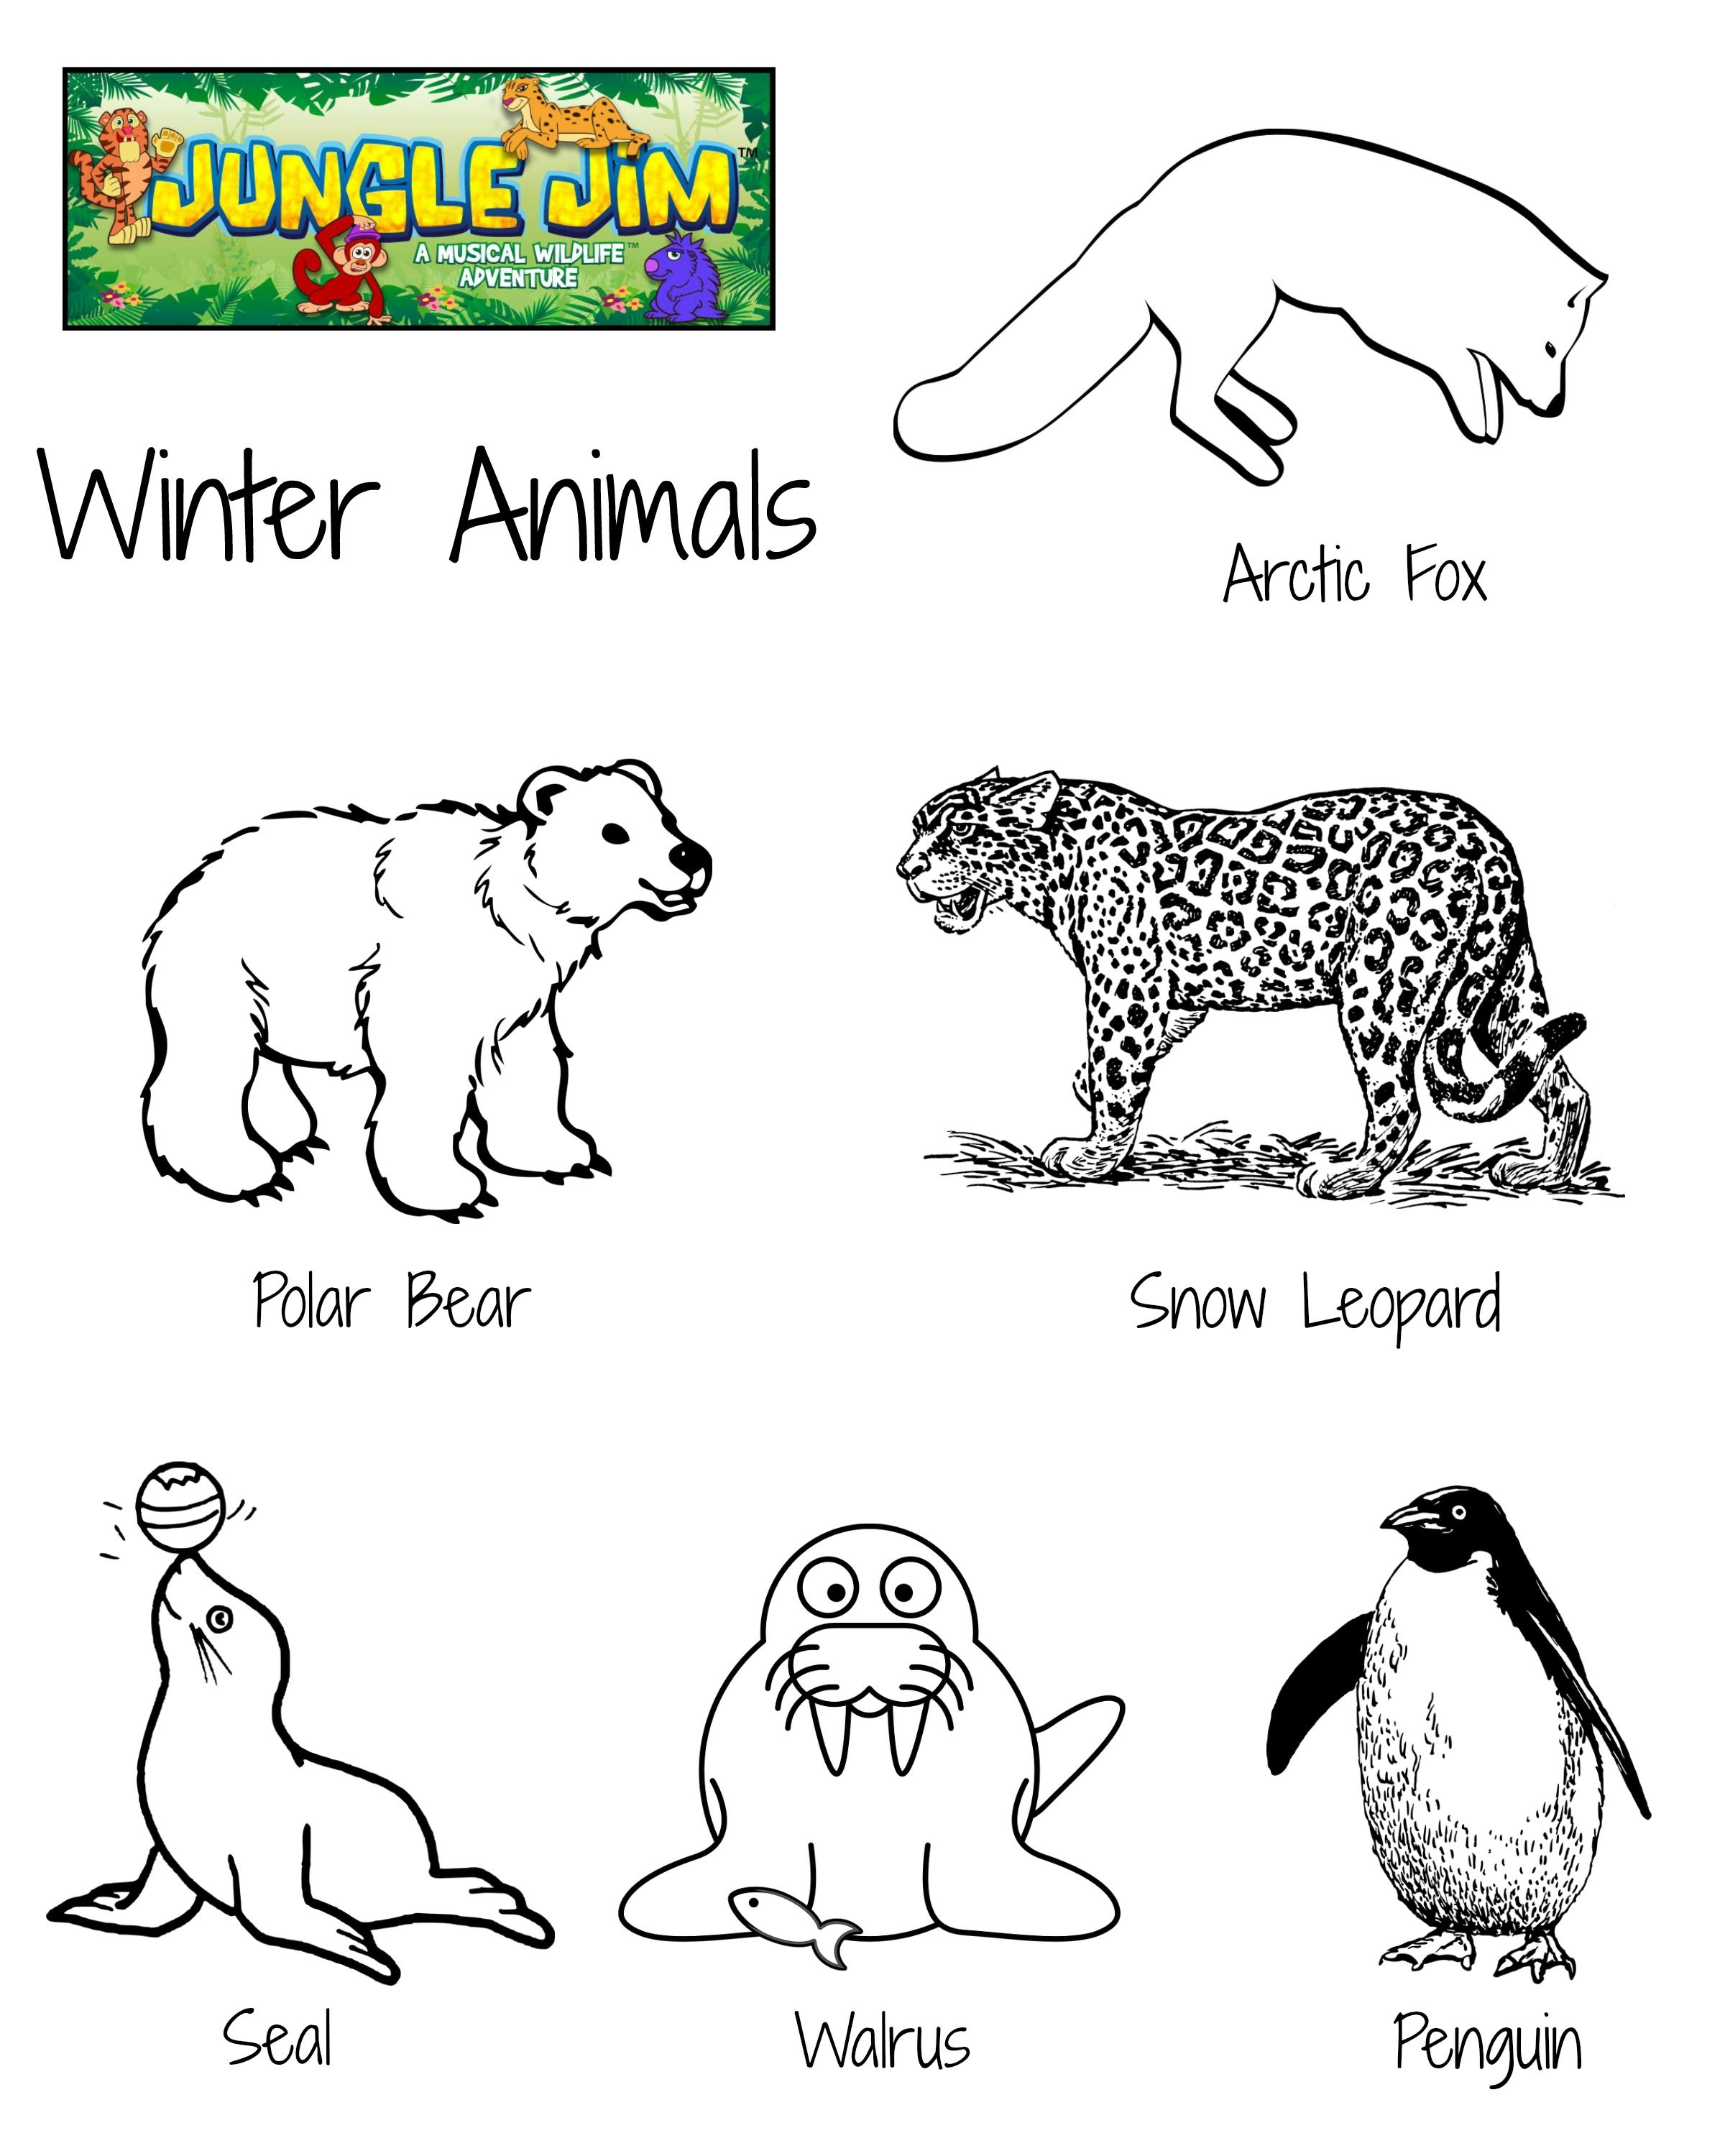 Winter Animal Free Printable Coloring Page with lots of